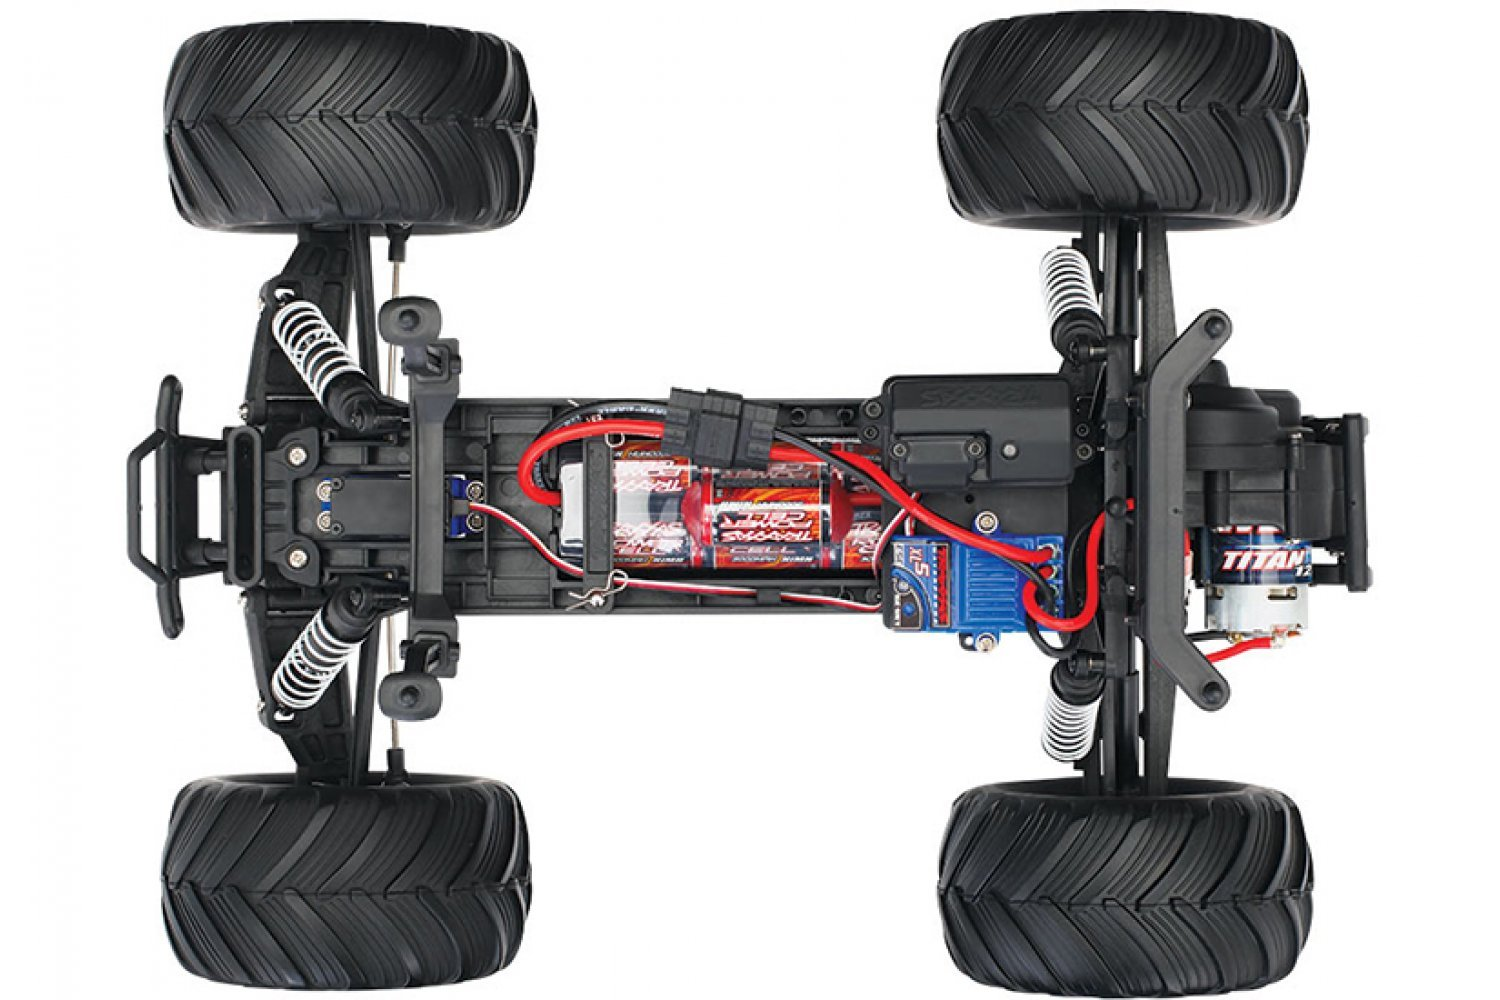 Traxxas 1/10 Bigfoot No. 1 2WD Electric Off Road RC Truck